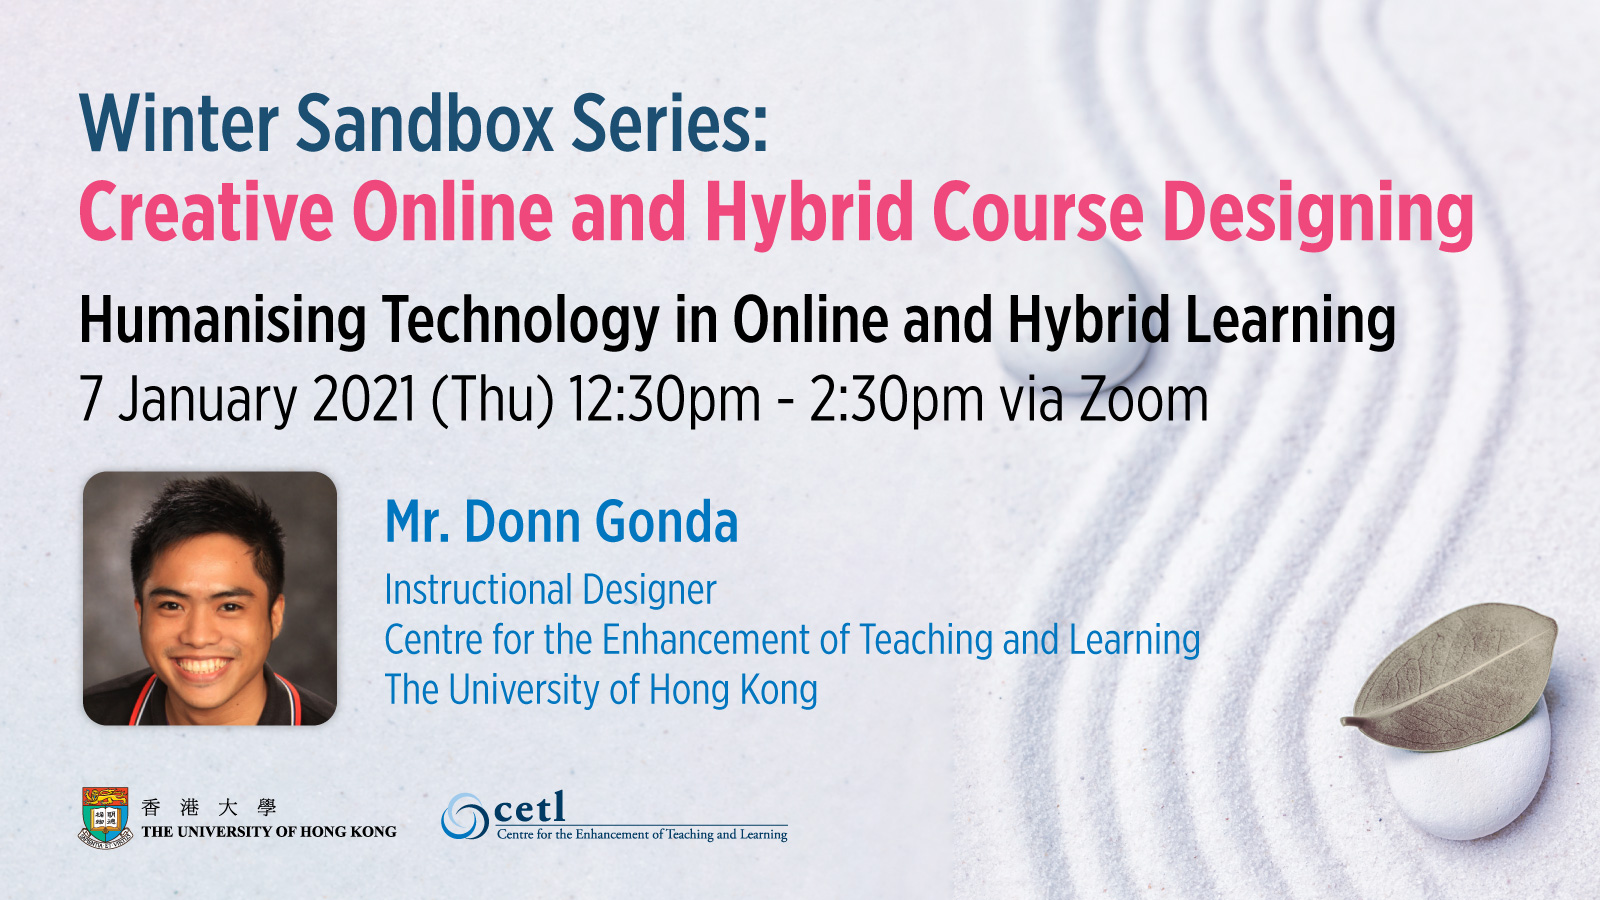 Session 3:  Humanising Technology in Online and Hybrid Learning